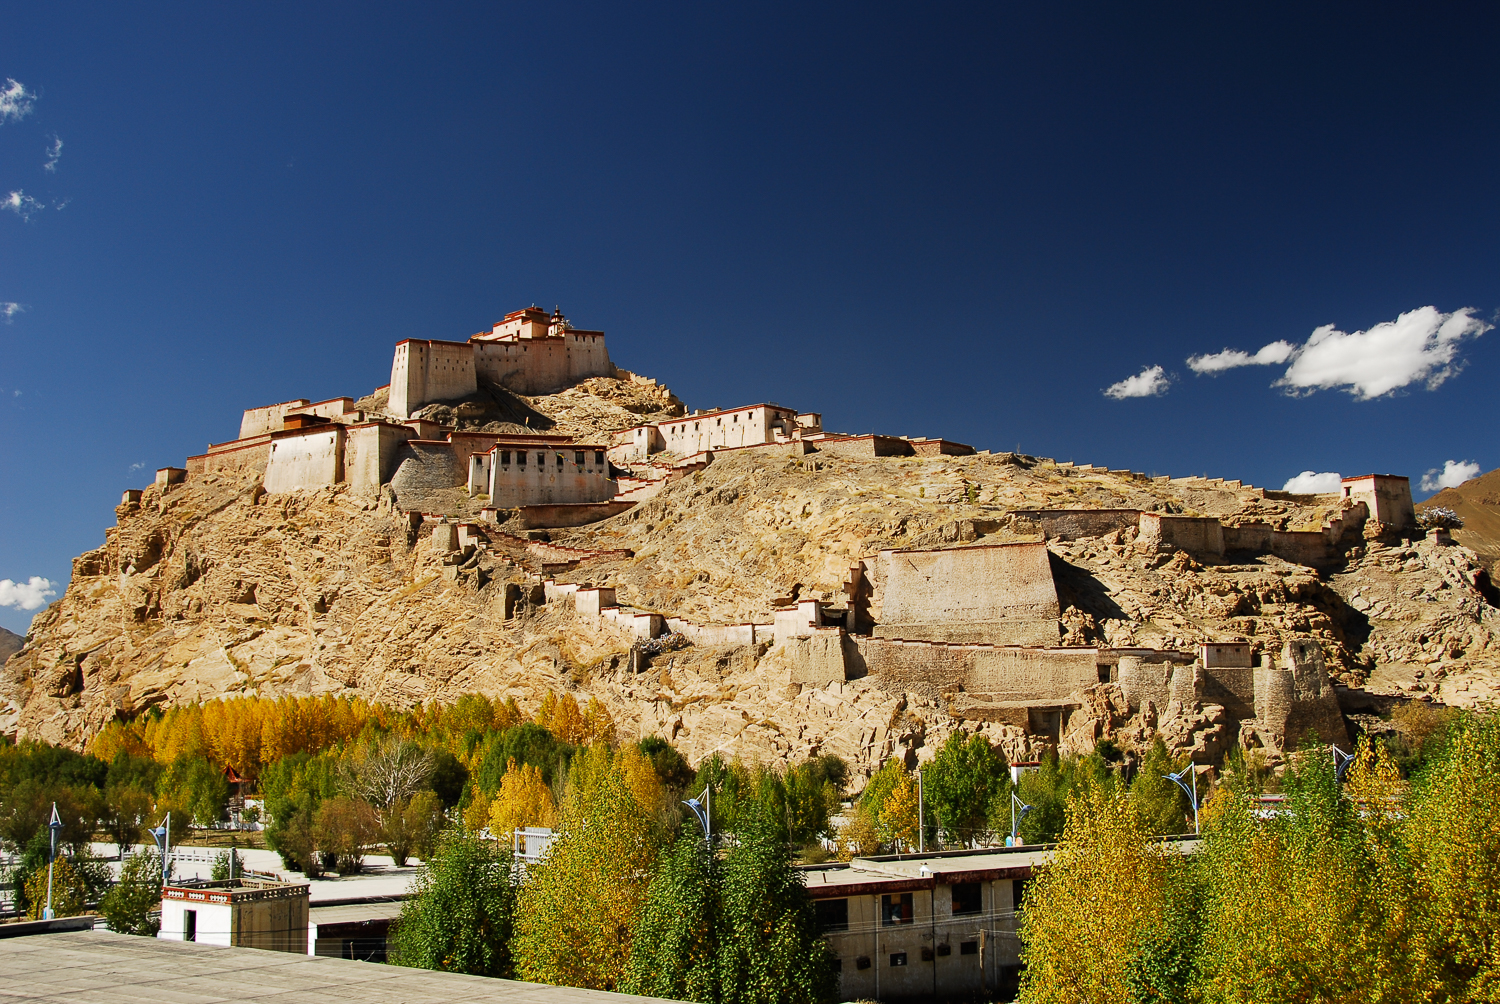 Gyantse Fortress is one of the best preserved edifices in Tibet. It sits perched high above its namesake, the town of Gyantse.